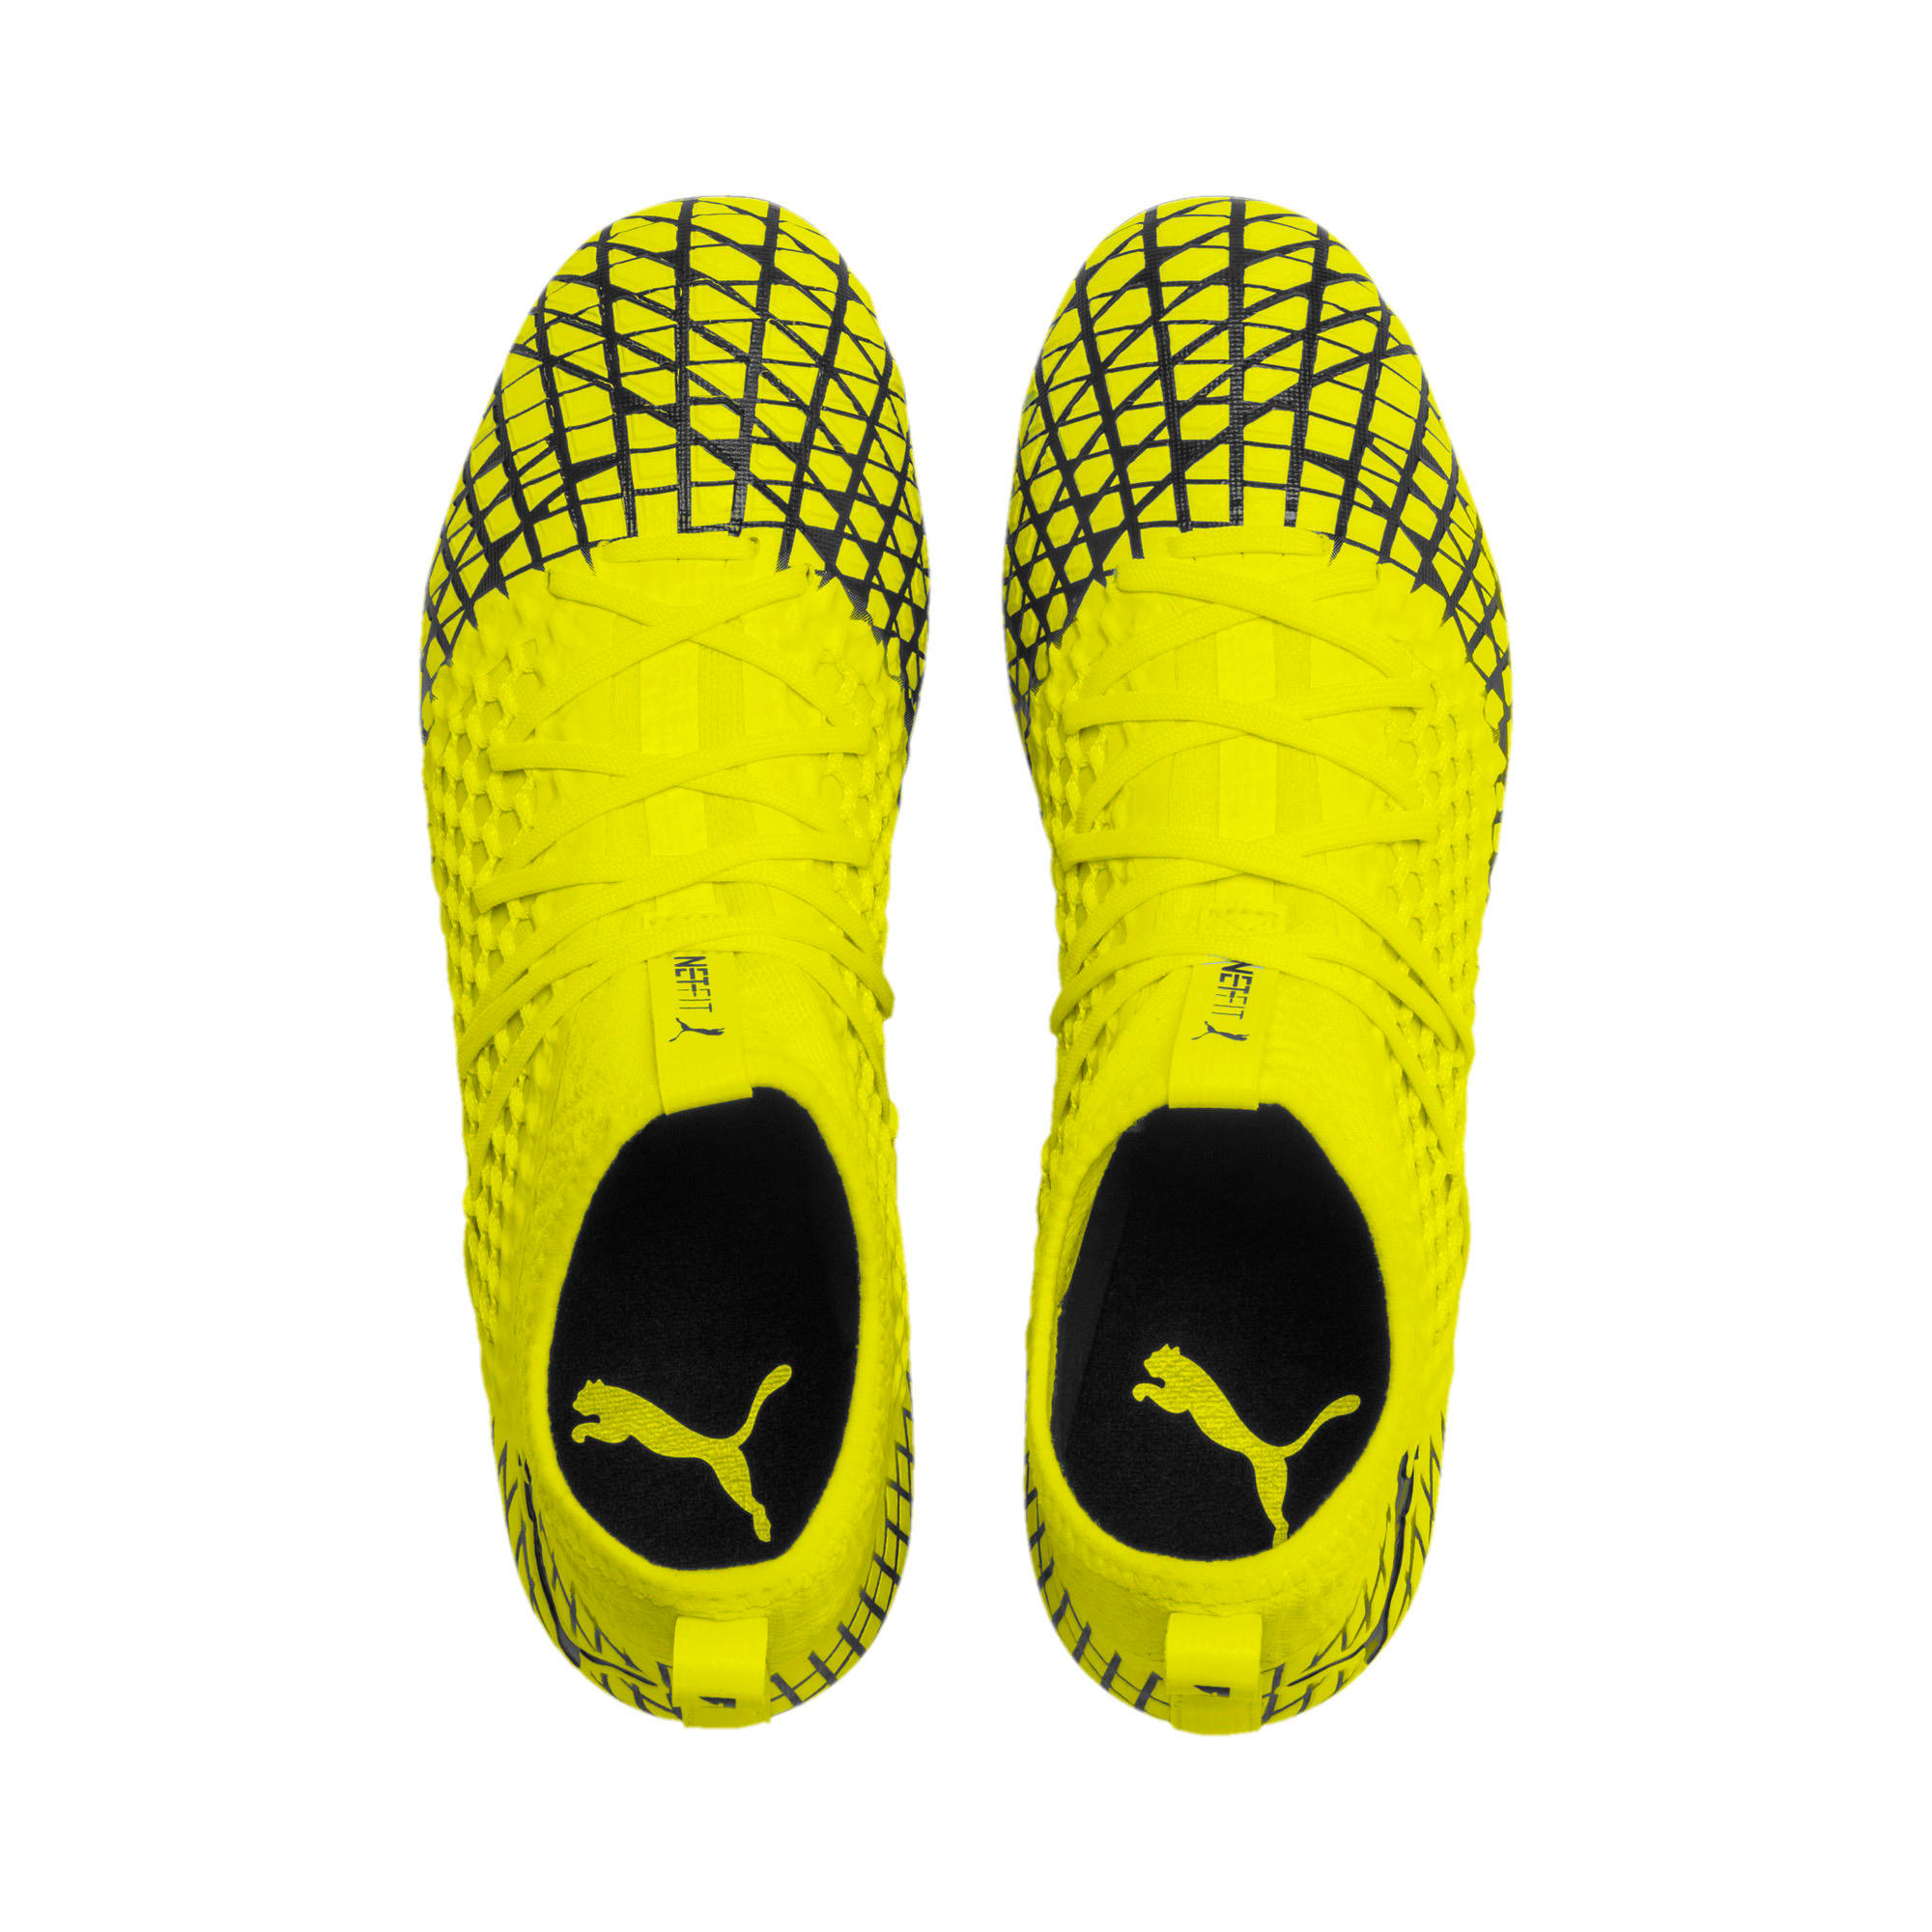 Thumbnail 7 of FUTURE 4.3 NETFIT FG/AG Men's Soccer Cleats, Yellow Alert-Puma Black, medium